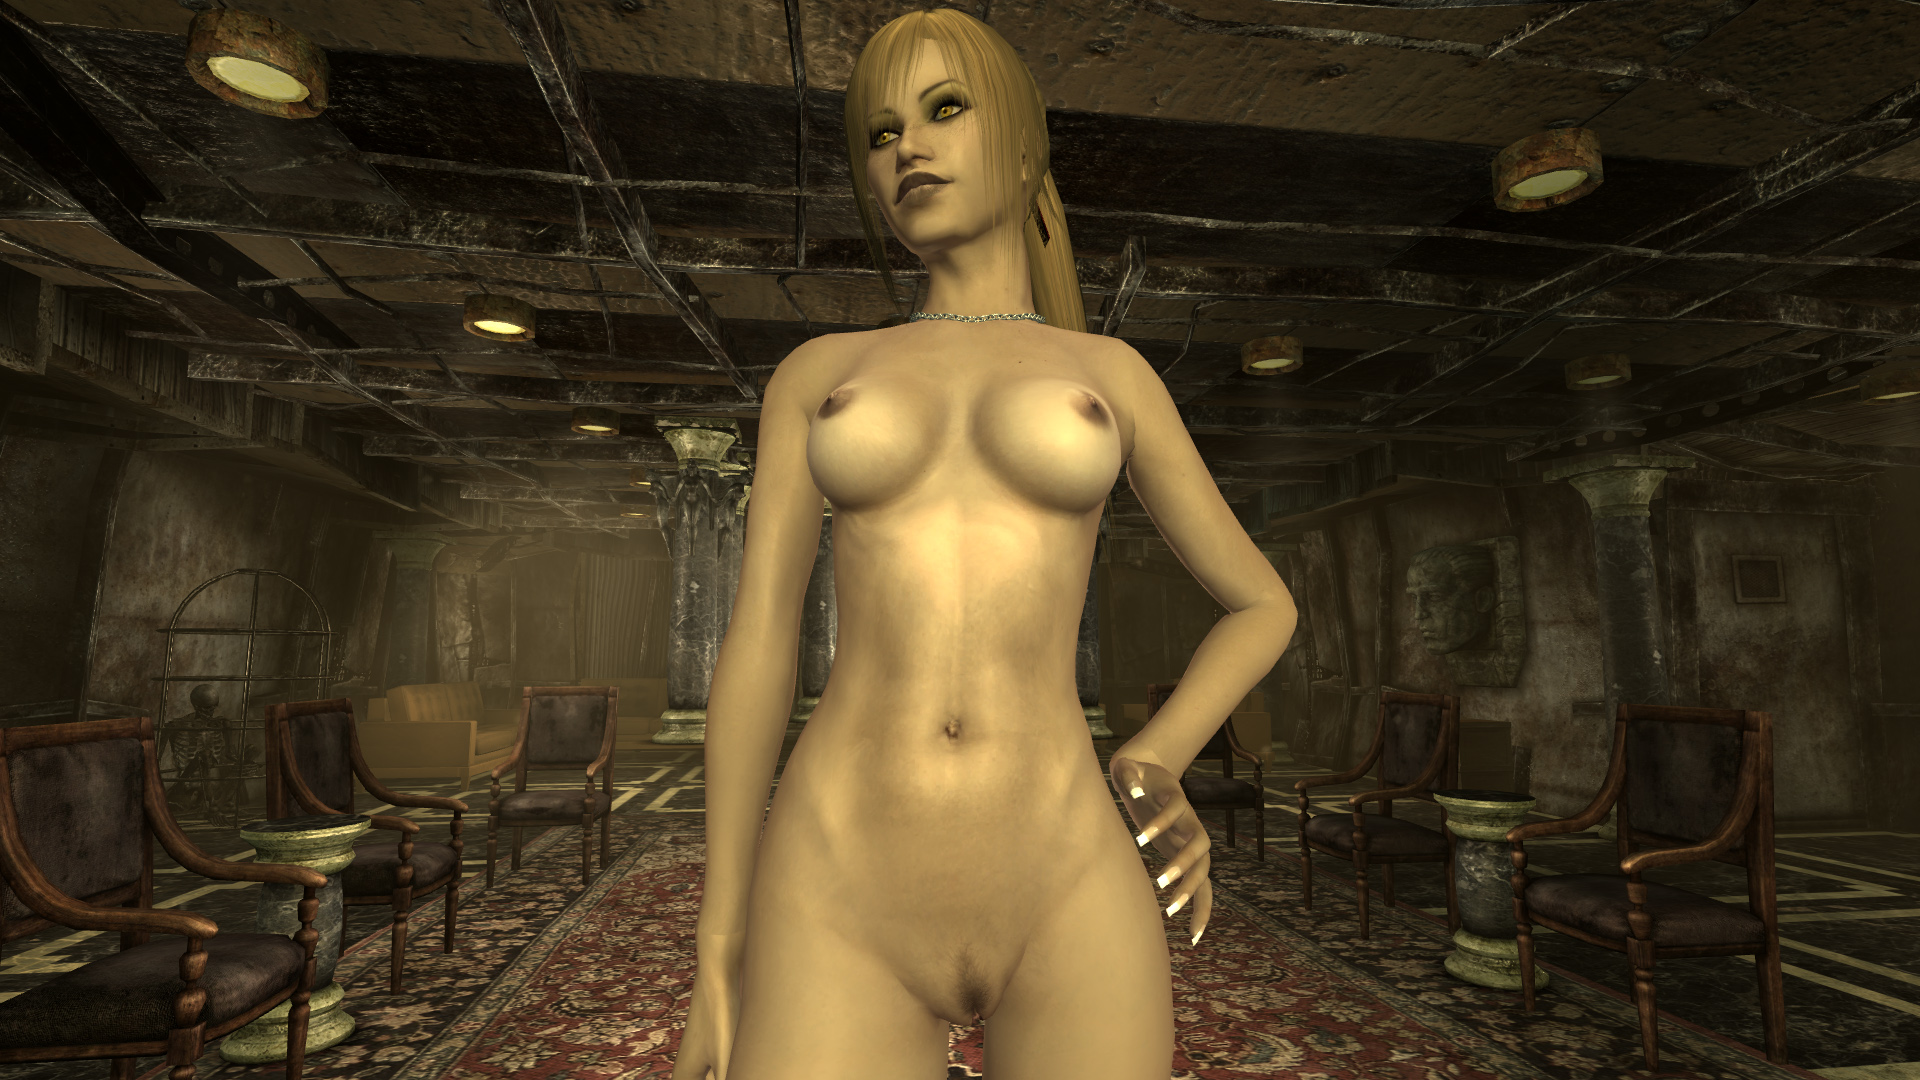 Girls naked in fallout 3 nsfw download